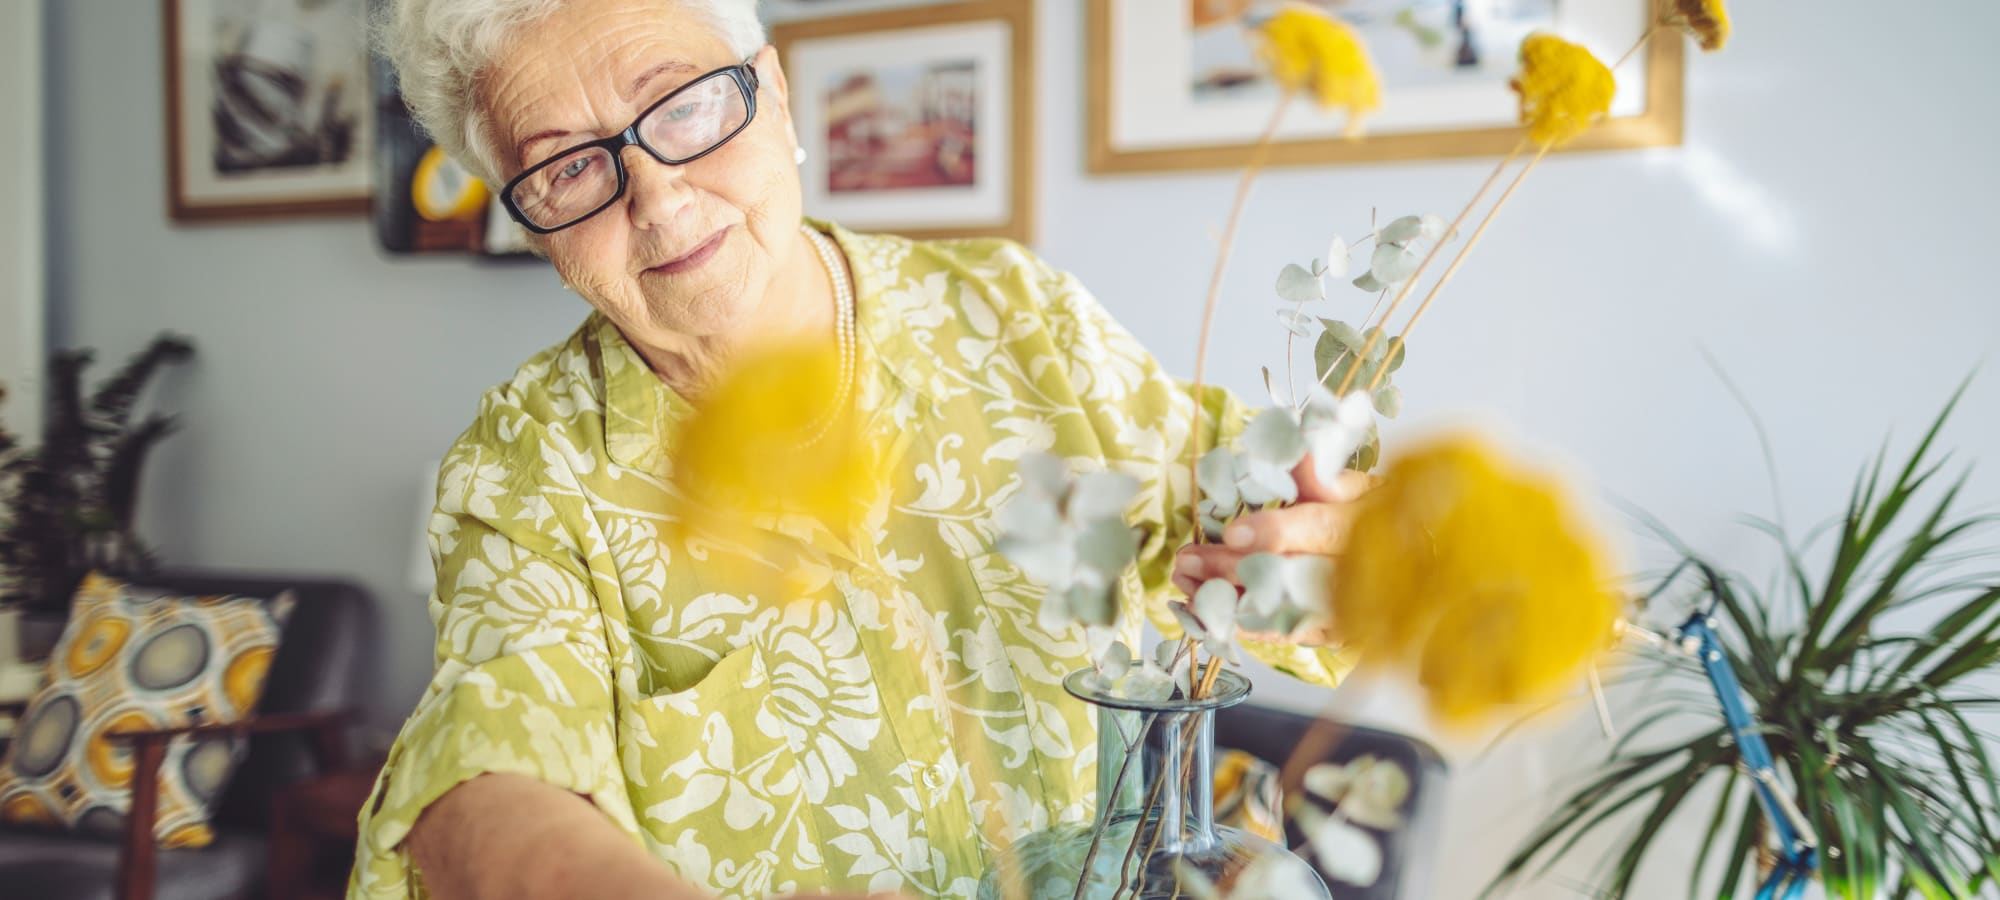 Woman in yellow shirt arranging yellow flowers in her apartment